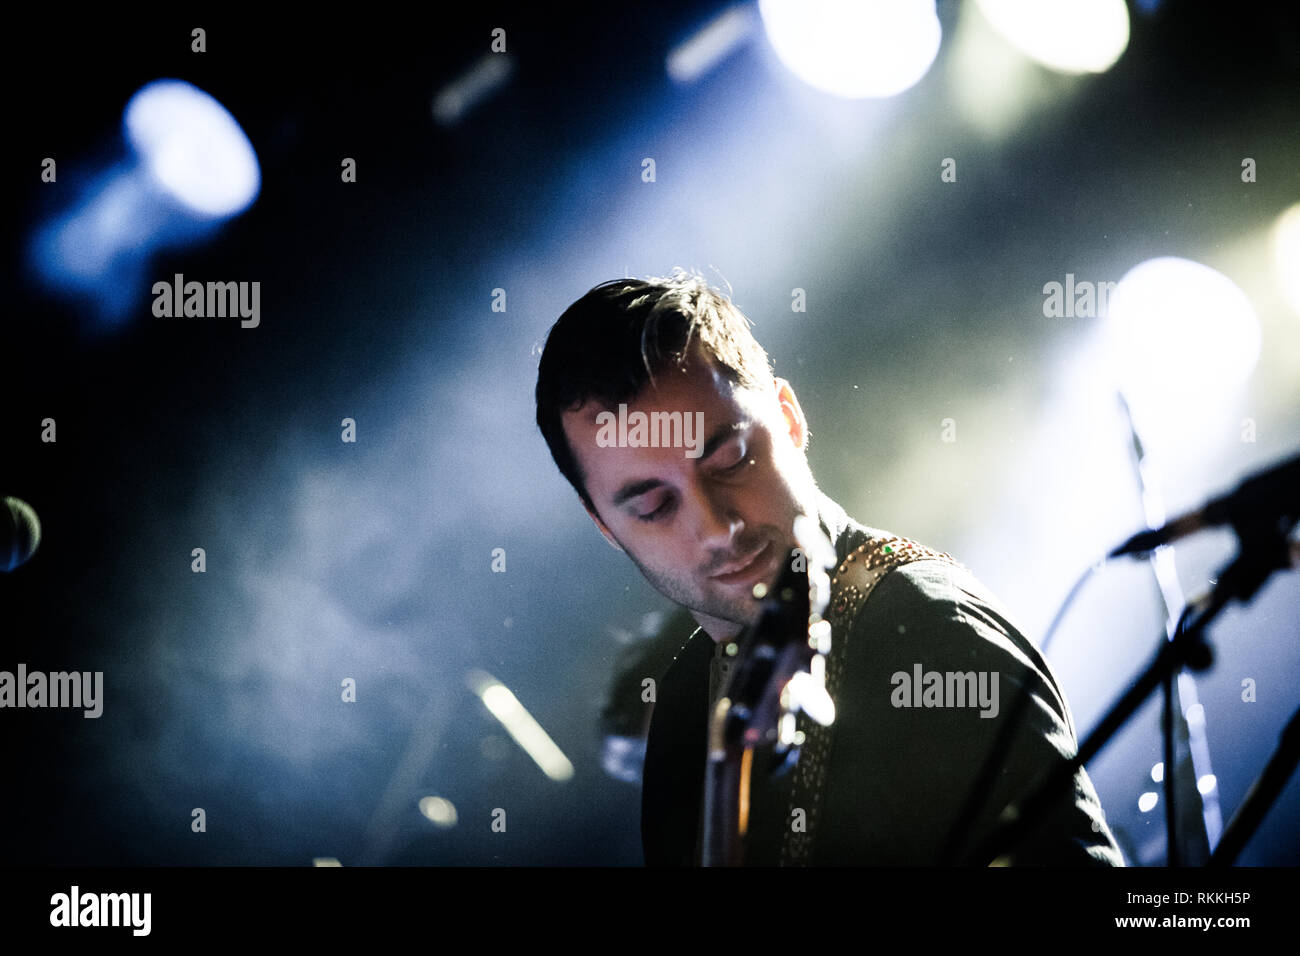 The American band The Lone Bellow performs a live concert at VEGA in Copenhagen. Here bass player Jason Pipkin is seen live on stage. Denmark, 05/02 2016. EXCLUDING DENMARK. Stock Photo